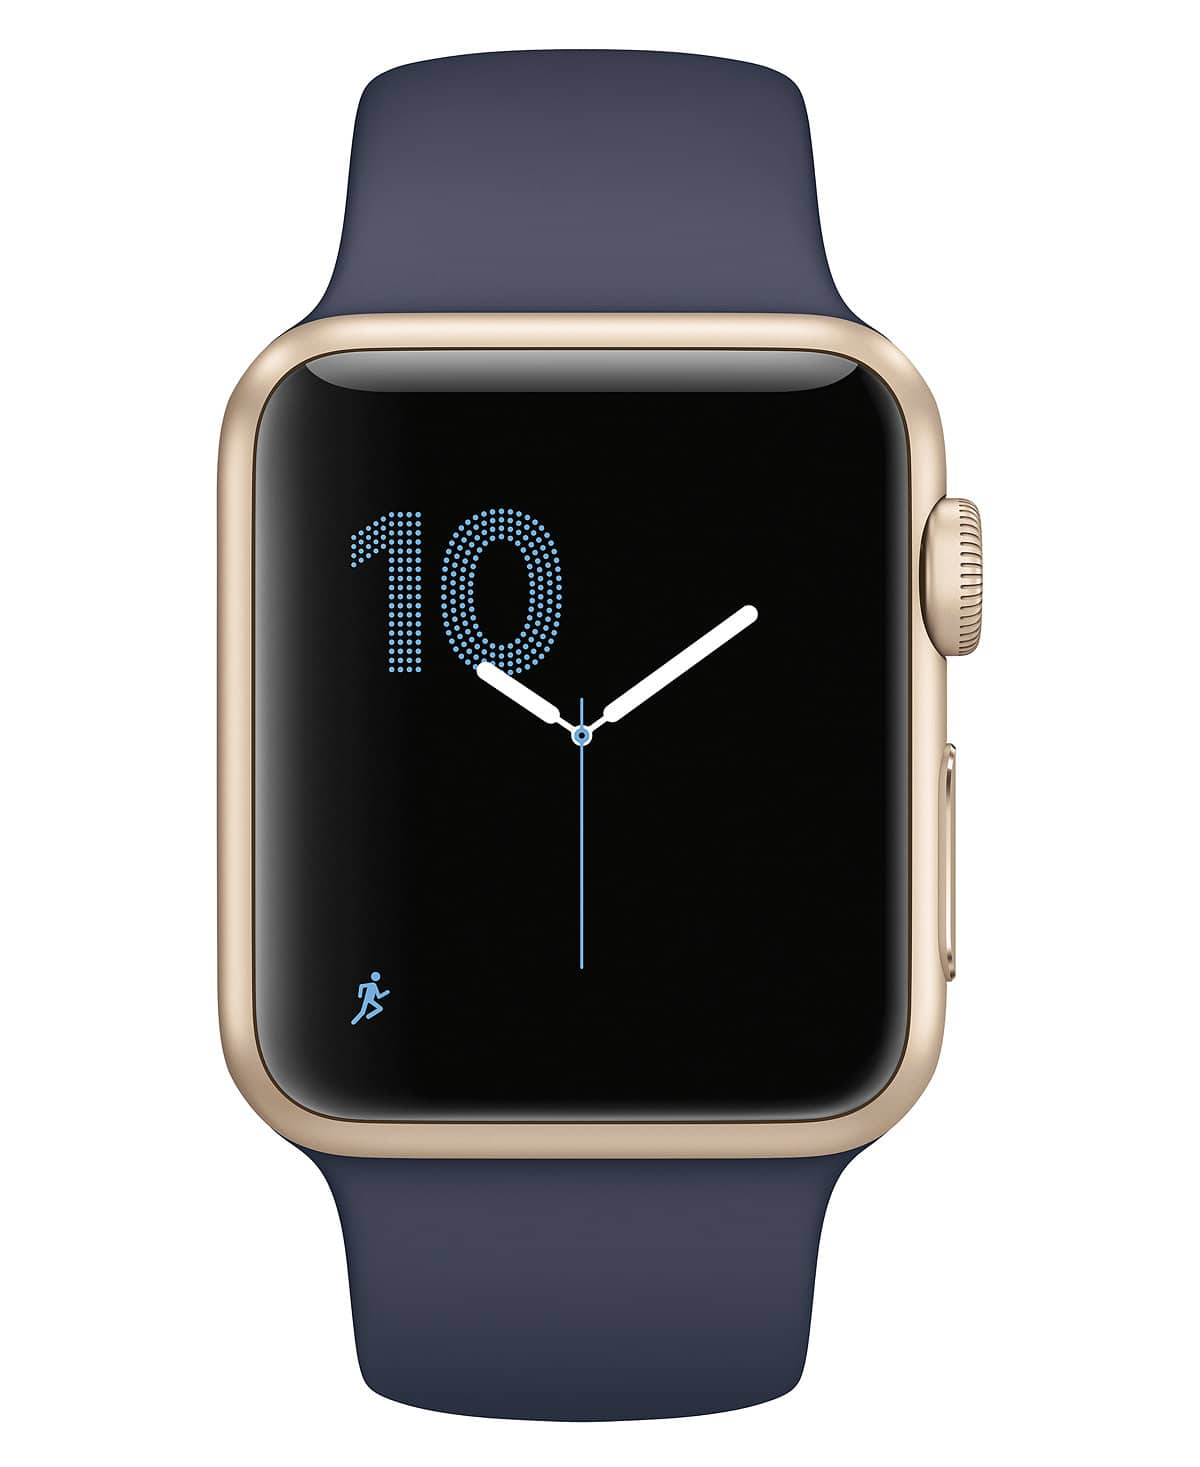 Apple Watch Series 1 & 2 $70 off at Macy's $199 and up